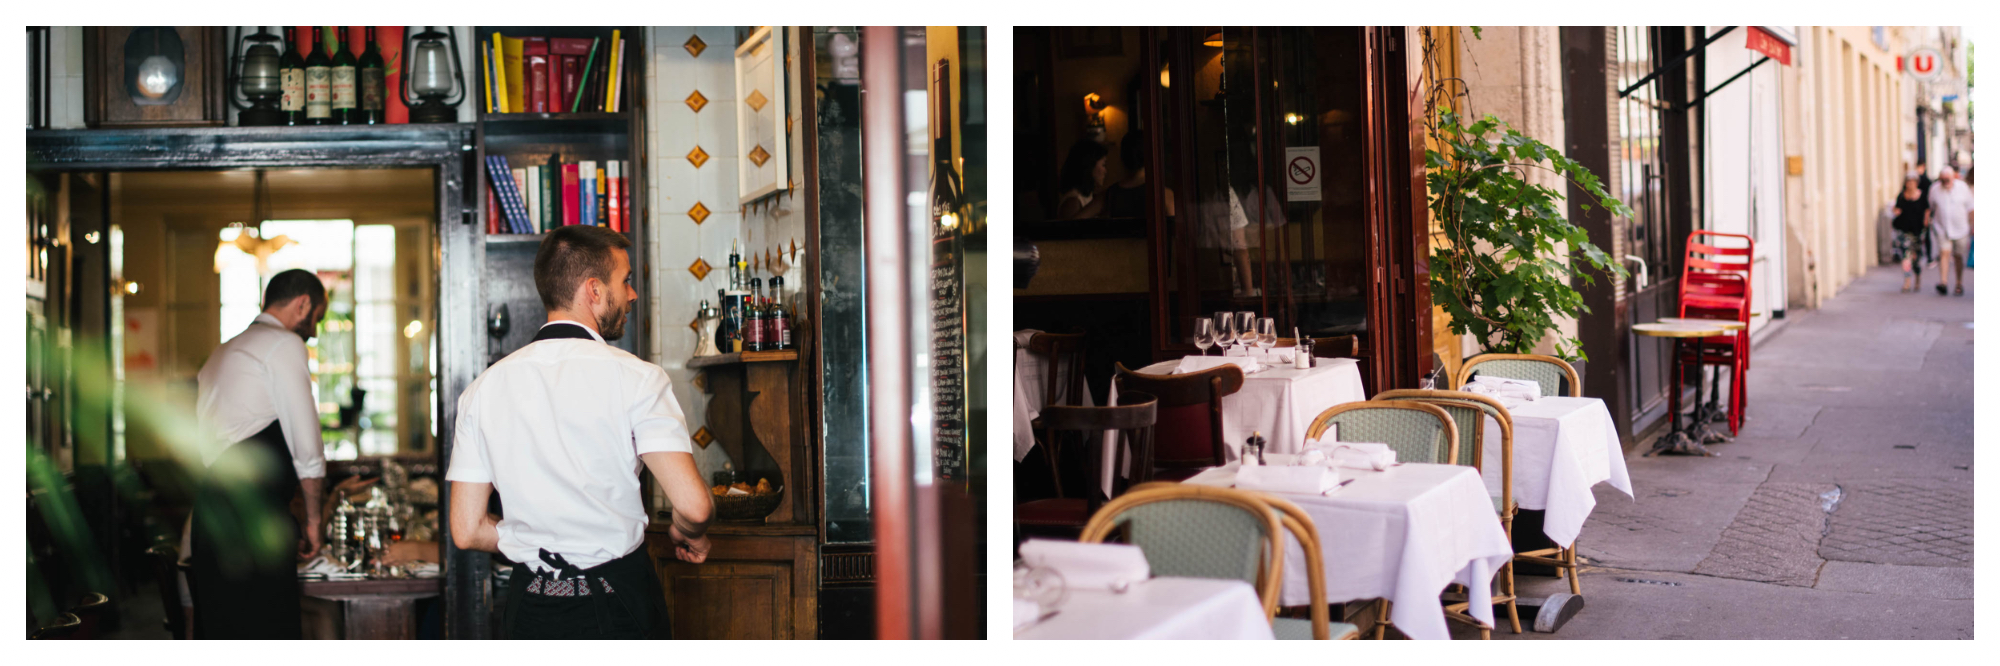 Left: A shot from the outside looking into the Bistro Paul Bert, where two waiters can be seen bustling around, Right: Empty tables line the outside seating area of the Bistro Paul Bert, set with white table clothes and napkins